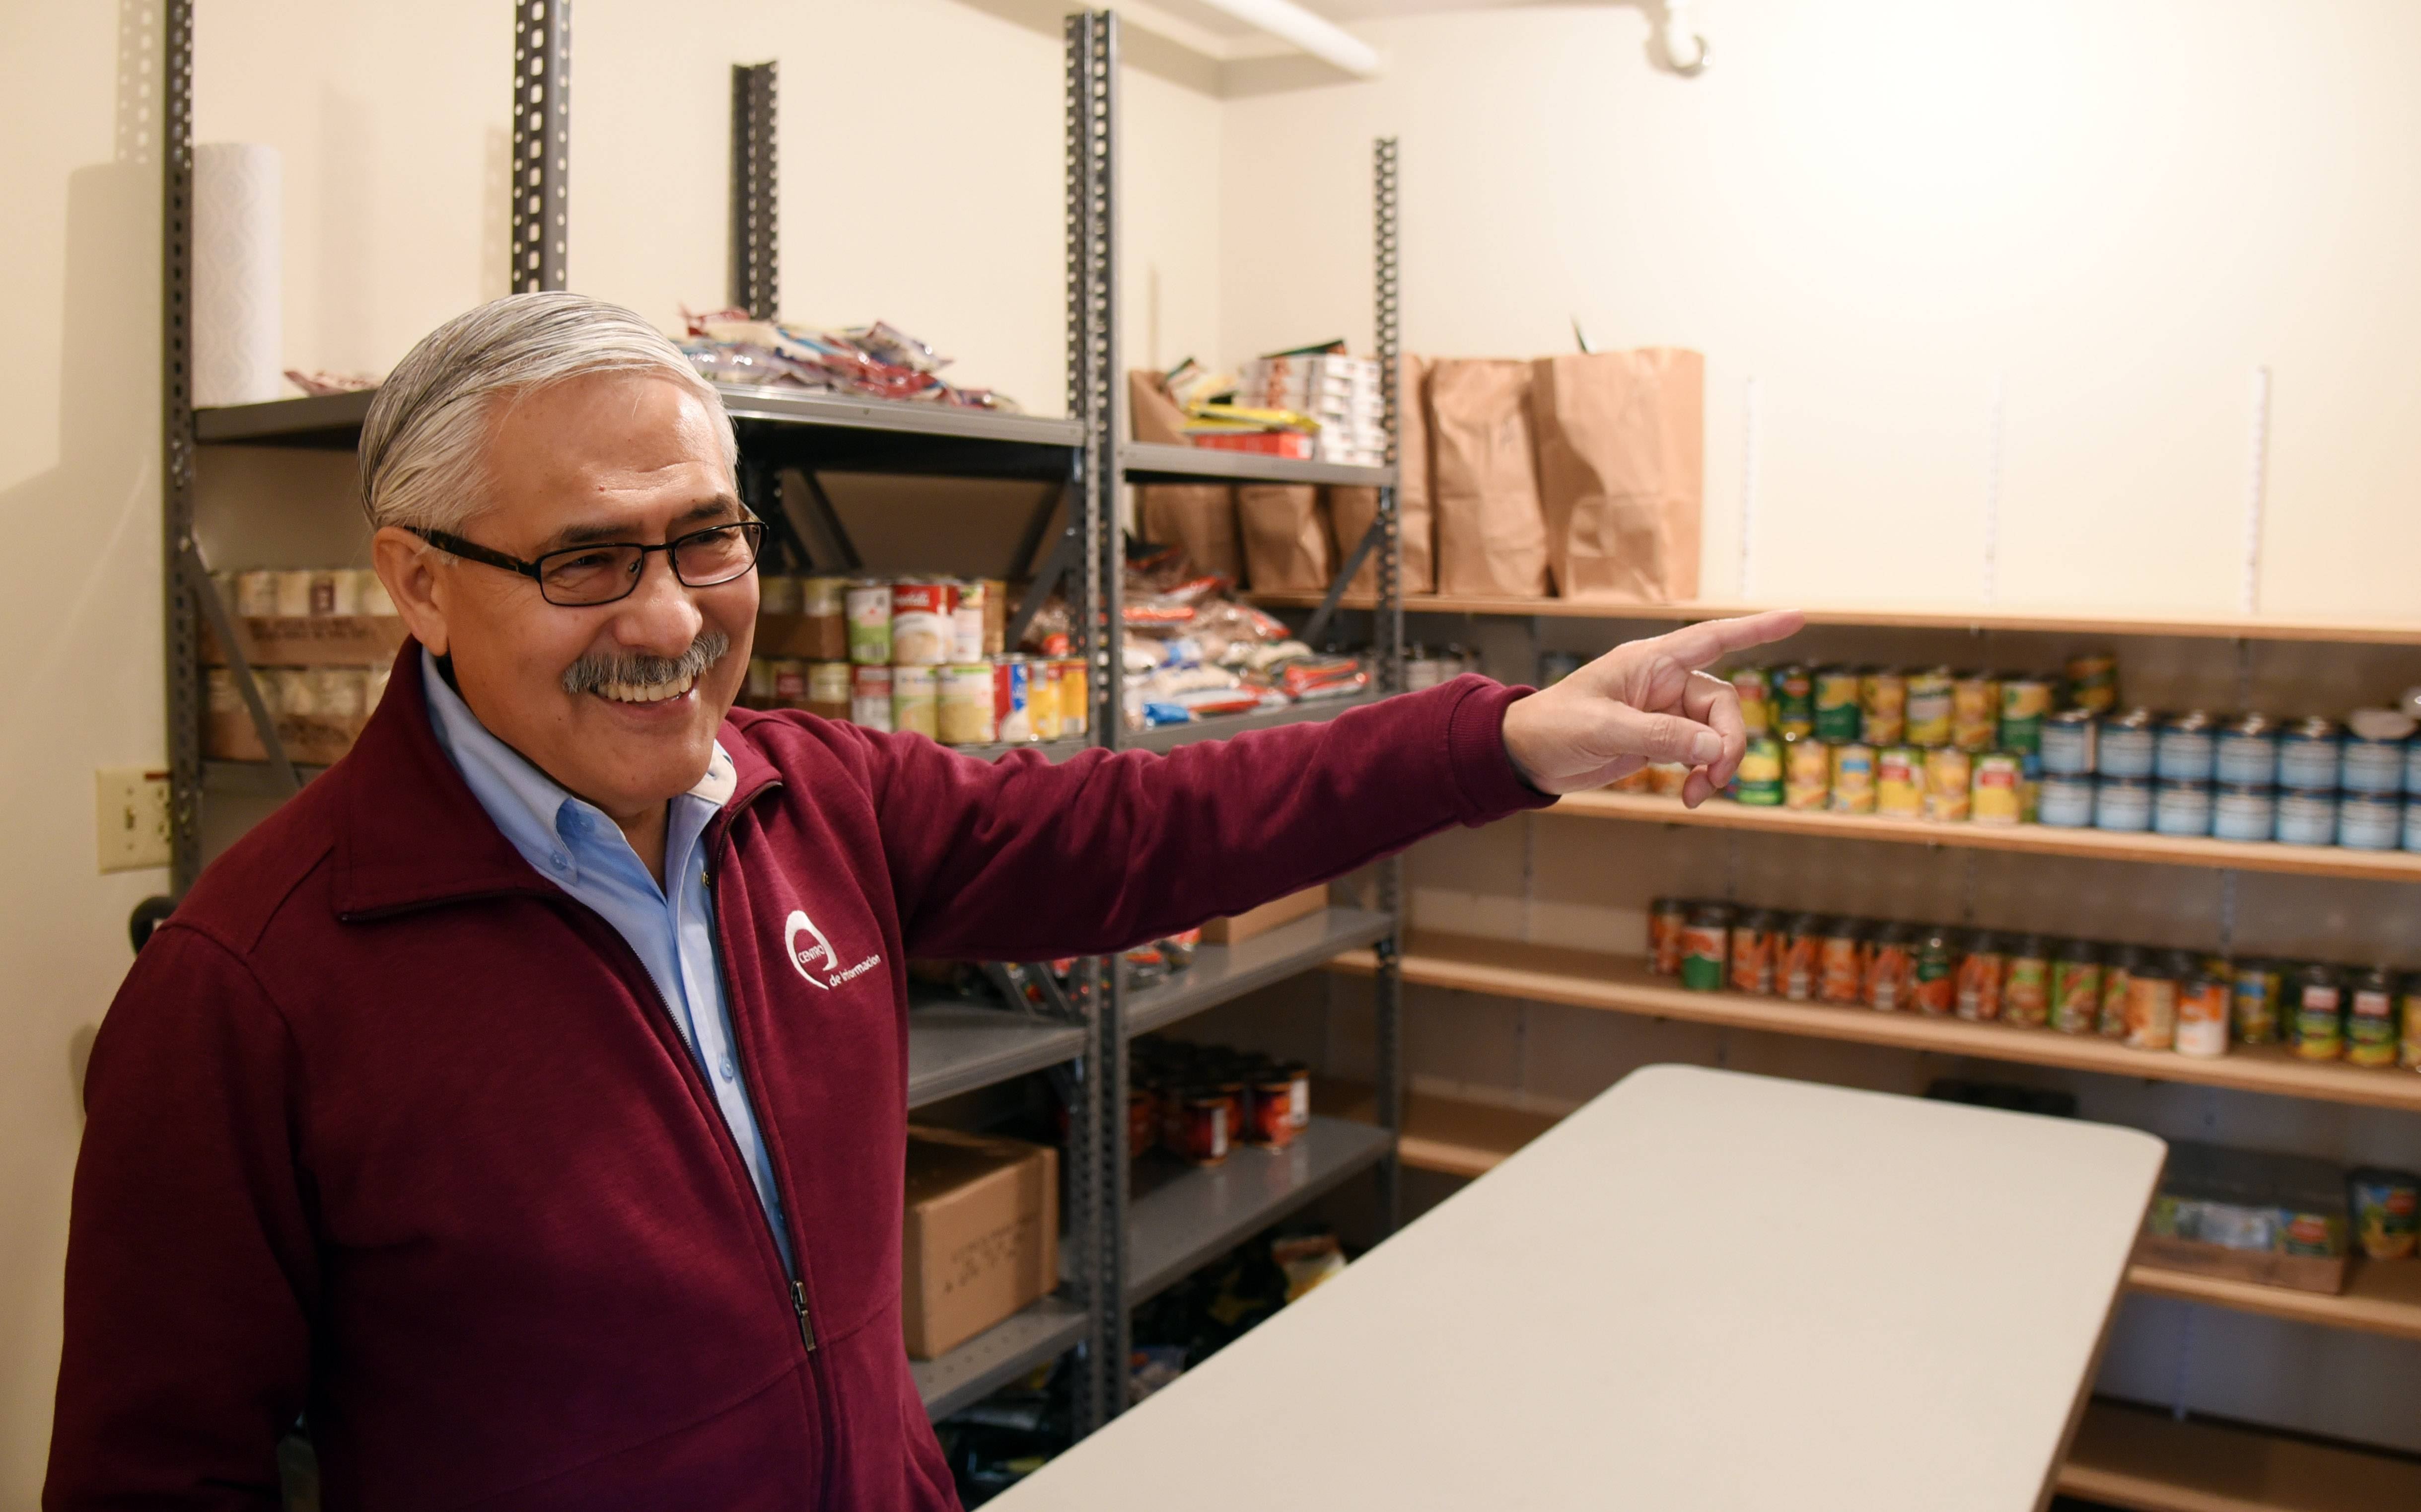 Executive Director Jaime Garcia shows off one of three rooms that house the emergency food bank at the new location of Centro de Informacion in Elgin, which opened Monday at 1885 Lin Lor Lane.